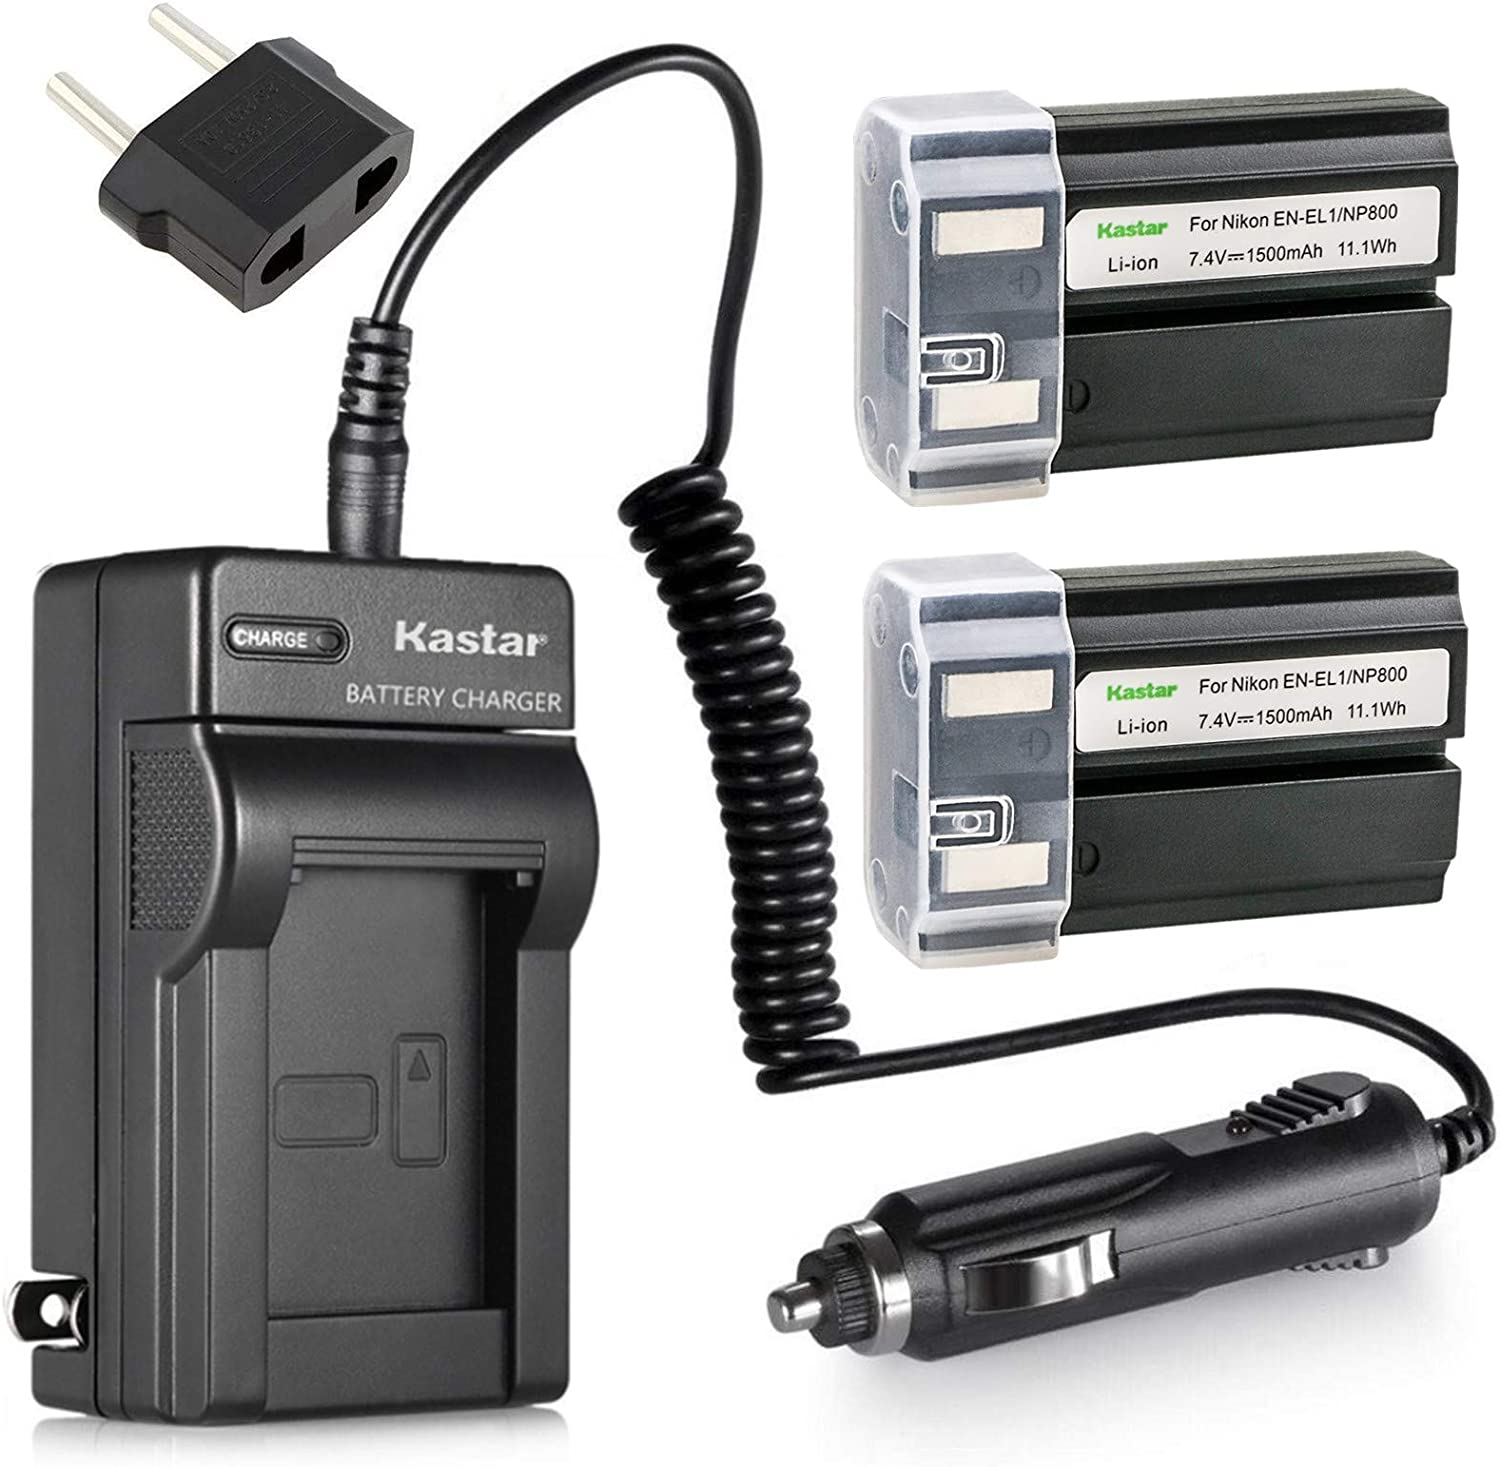 Kastar EN-EL1 Battery (2-Pack) and Charger Kit for Nikon ENEL1, Minota NP-800 and Nikon Cooipix 4300 4500 4800 5400 5700 775 8700 880 885 995 Coolpix E880 and Konica Minota DG-5W Dimage A200 Cameras